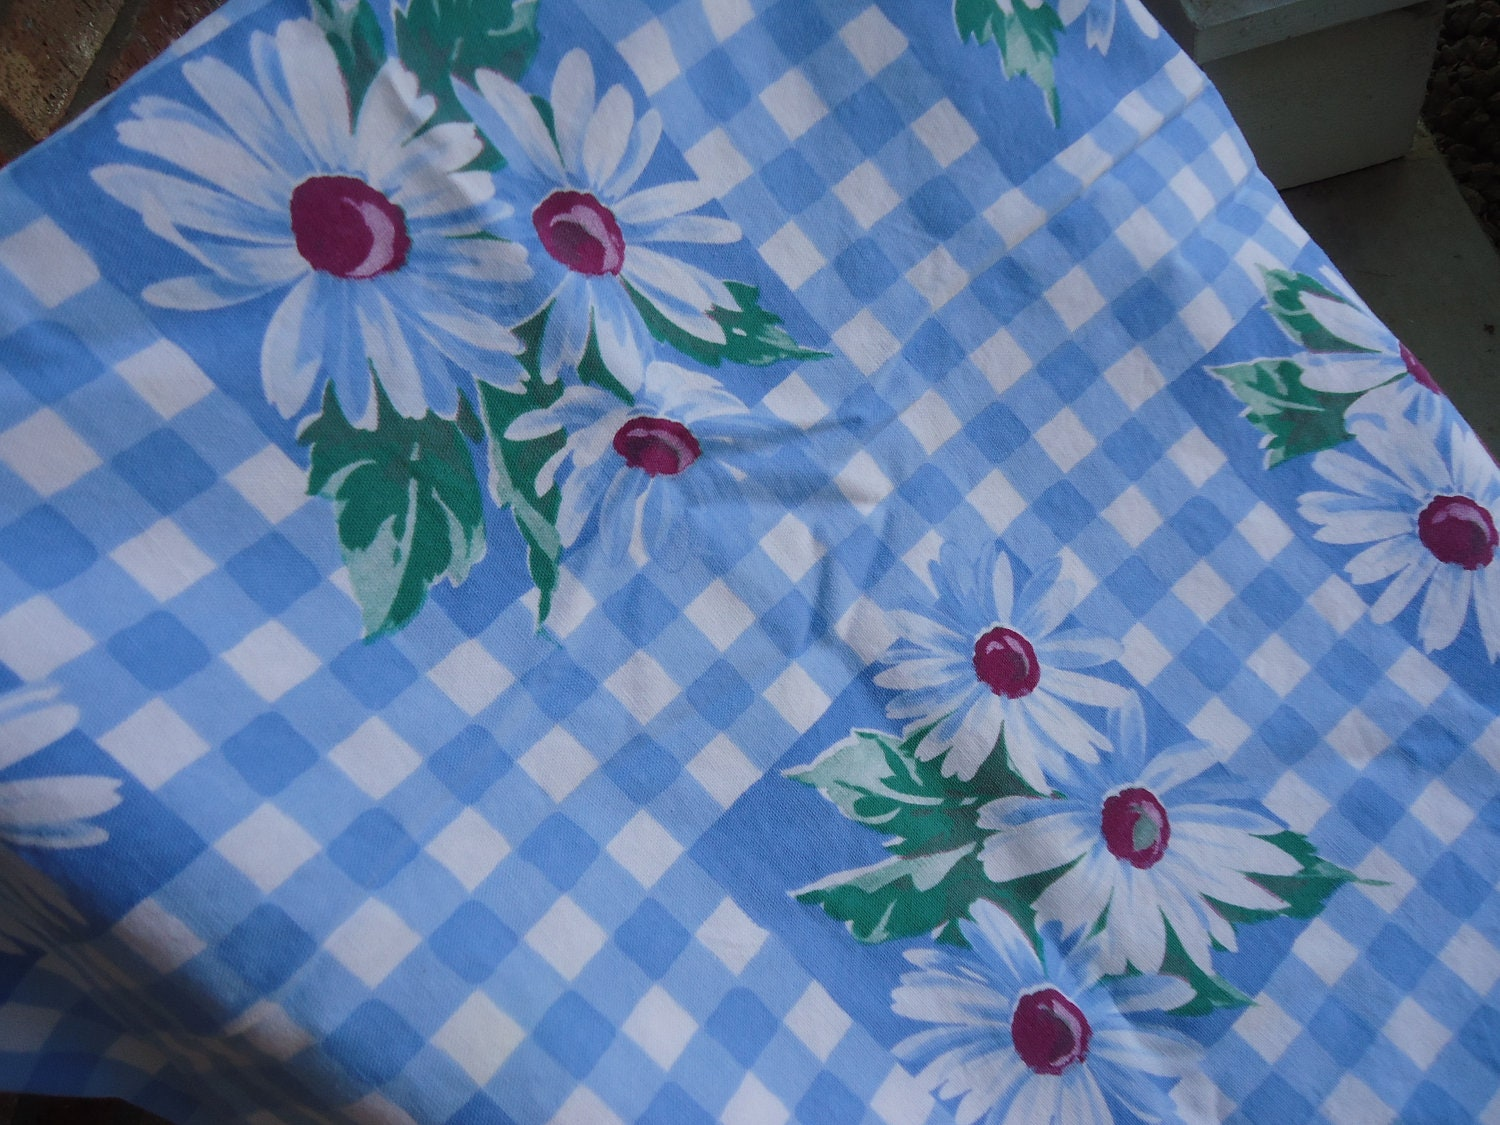 Wilendur Shasta Daisy Tablecloth Summer Blue By Cherrypickins